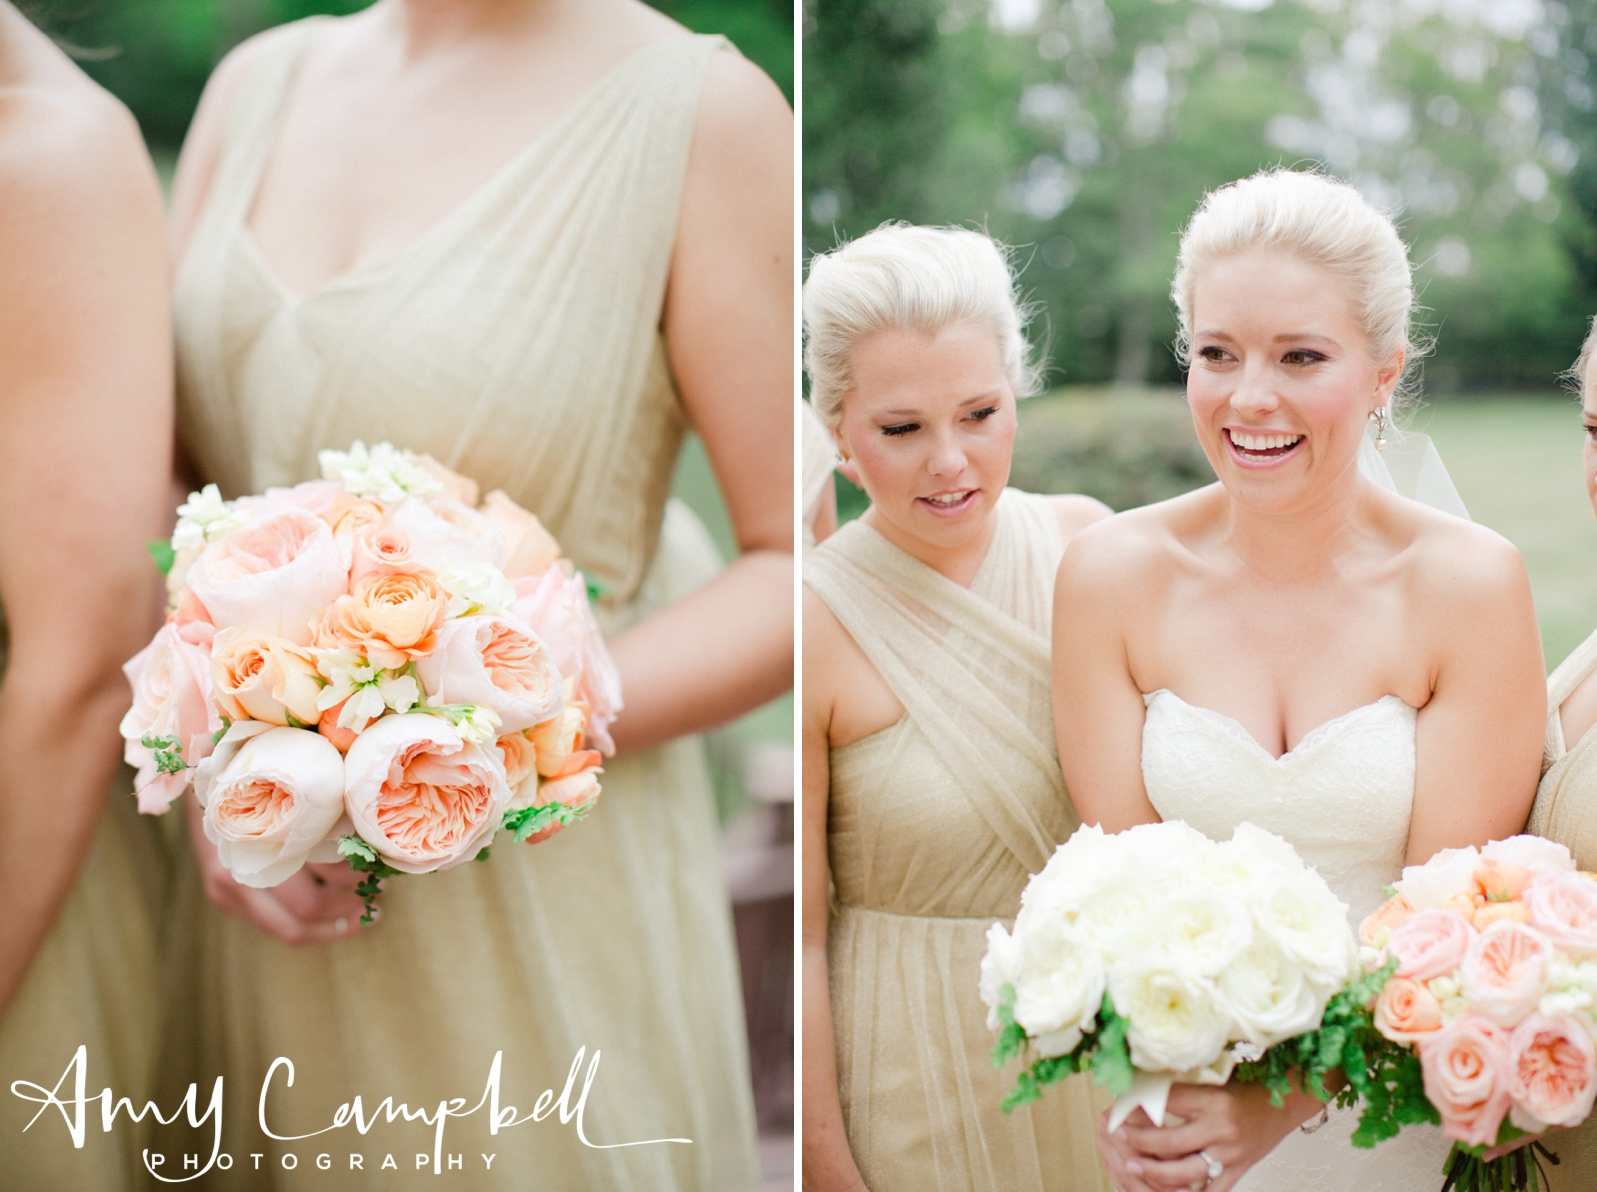 chelseamike_wedss_pics_amycampbellphotography_025.jpg